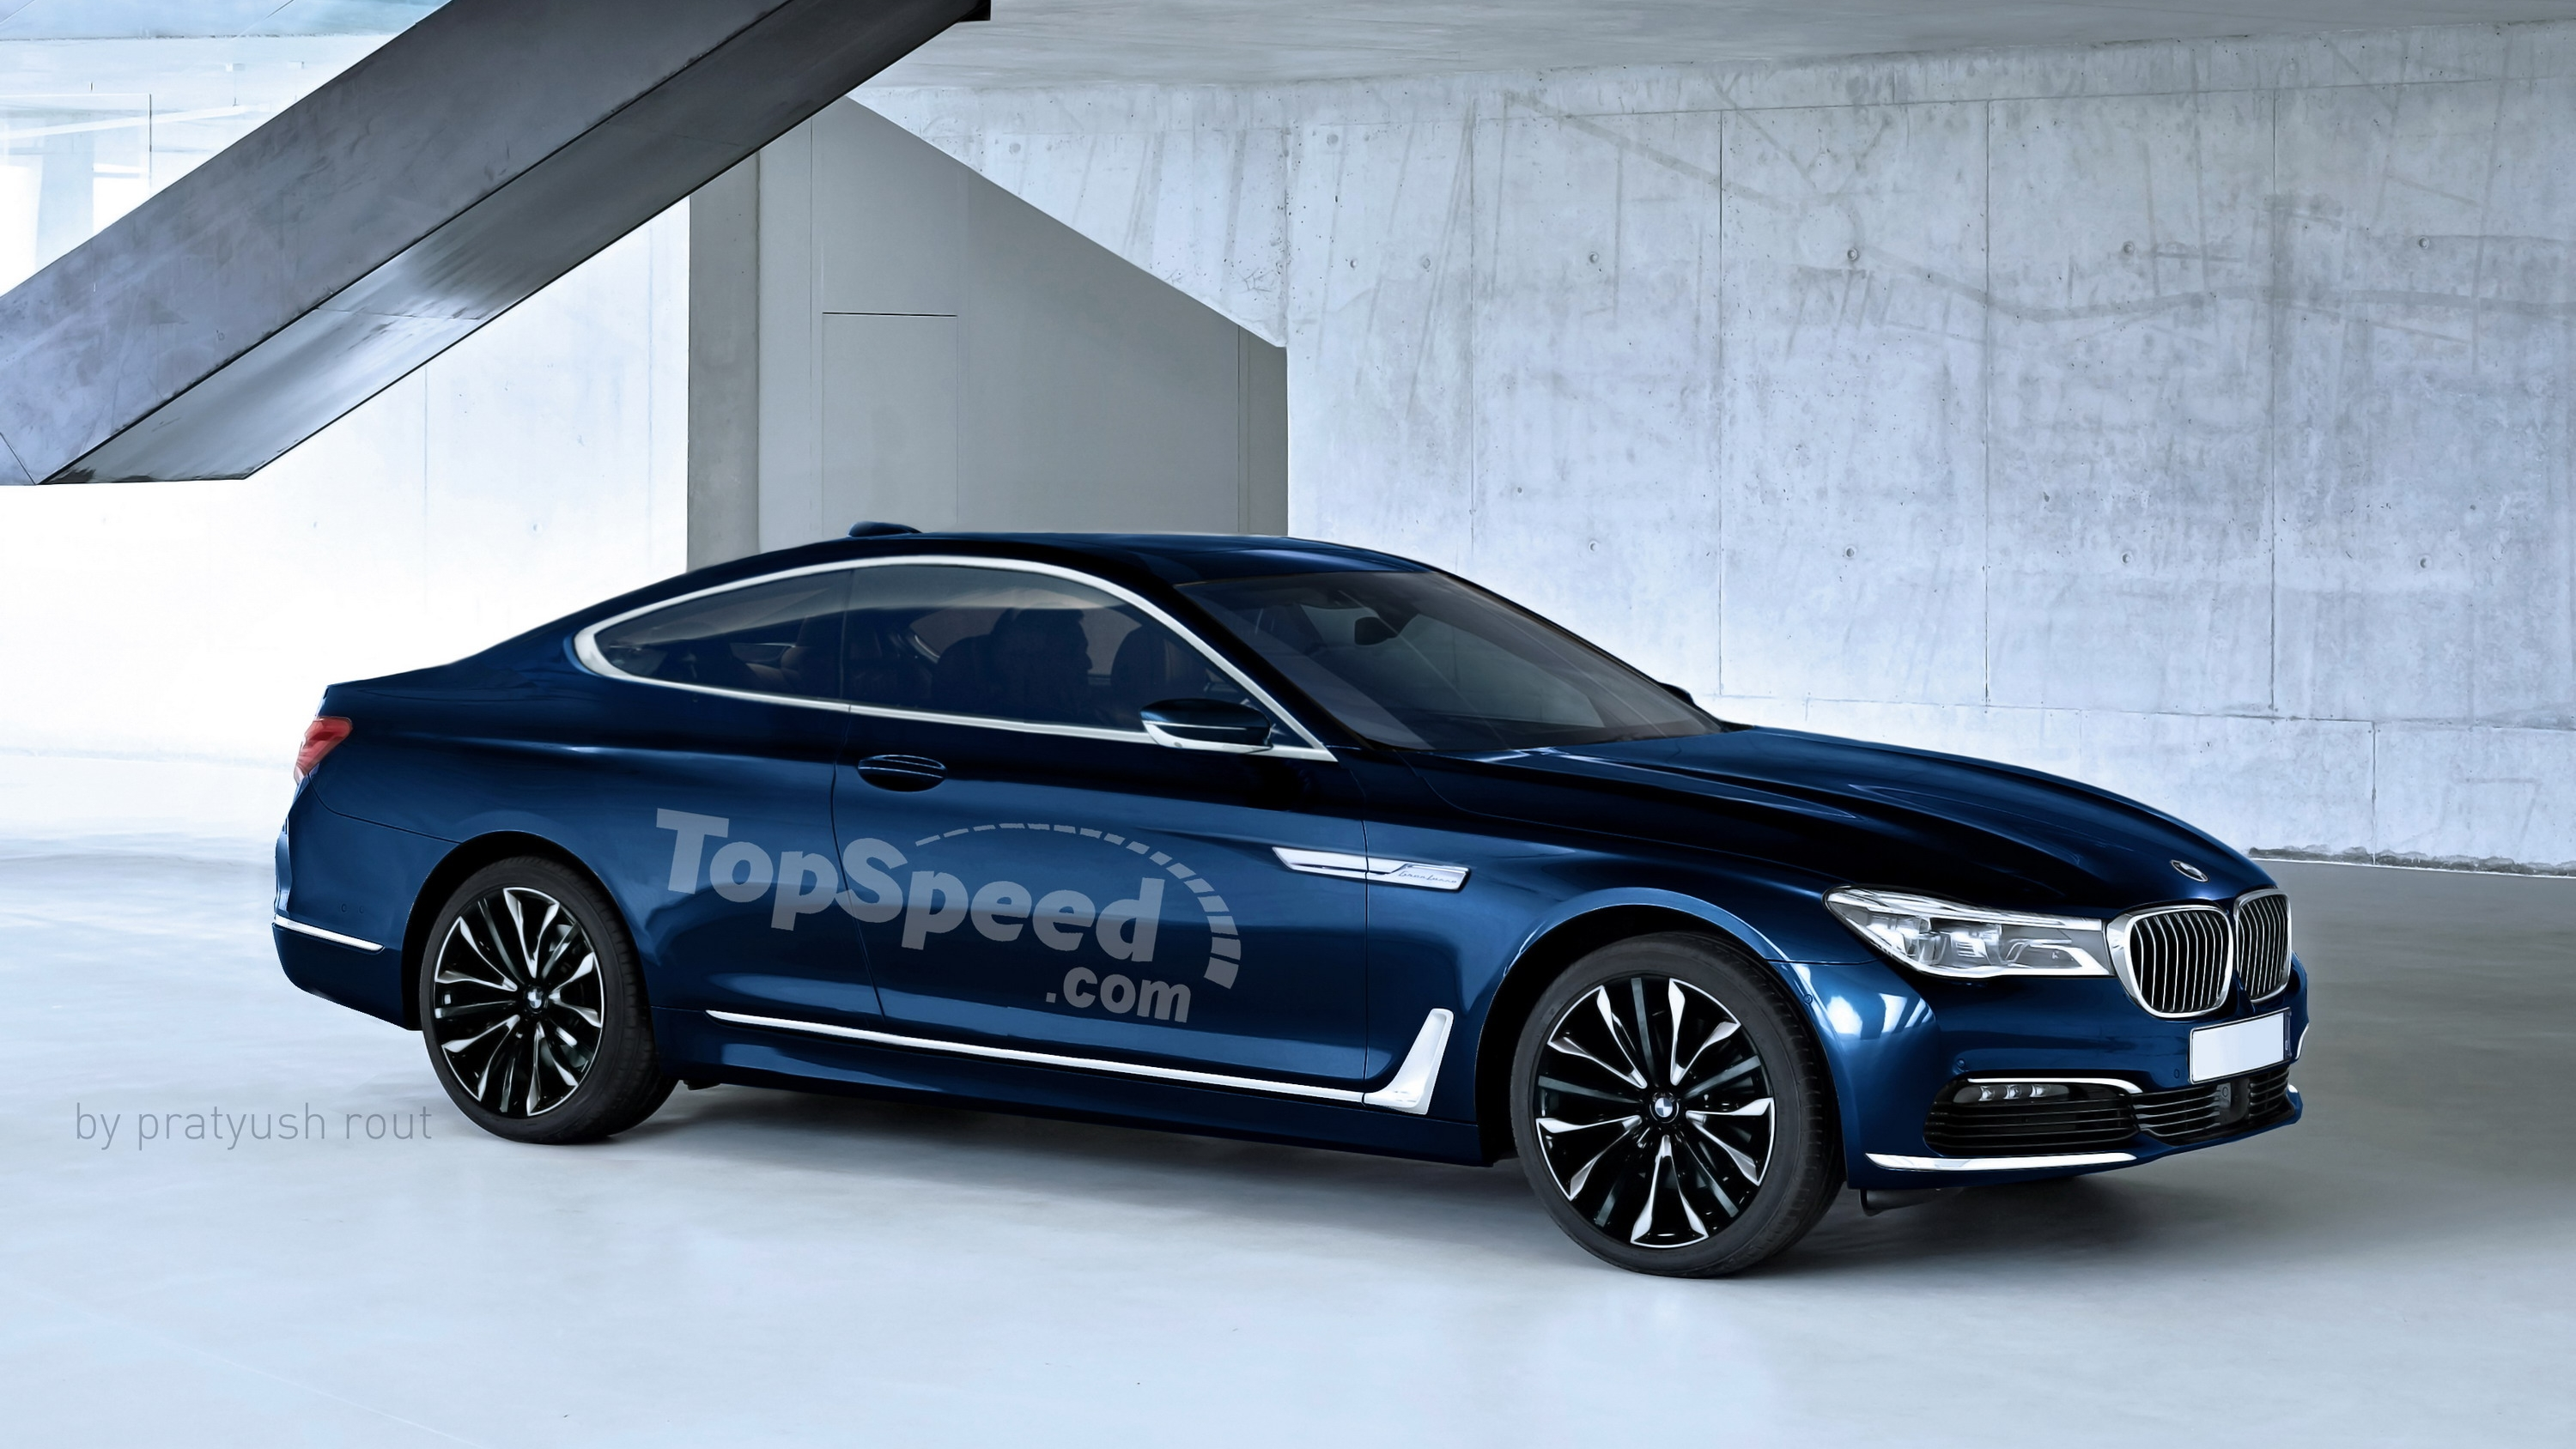 2019 BMW 8 Series | Top Speed